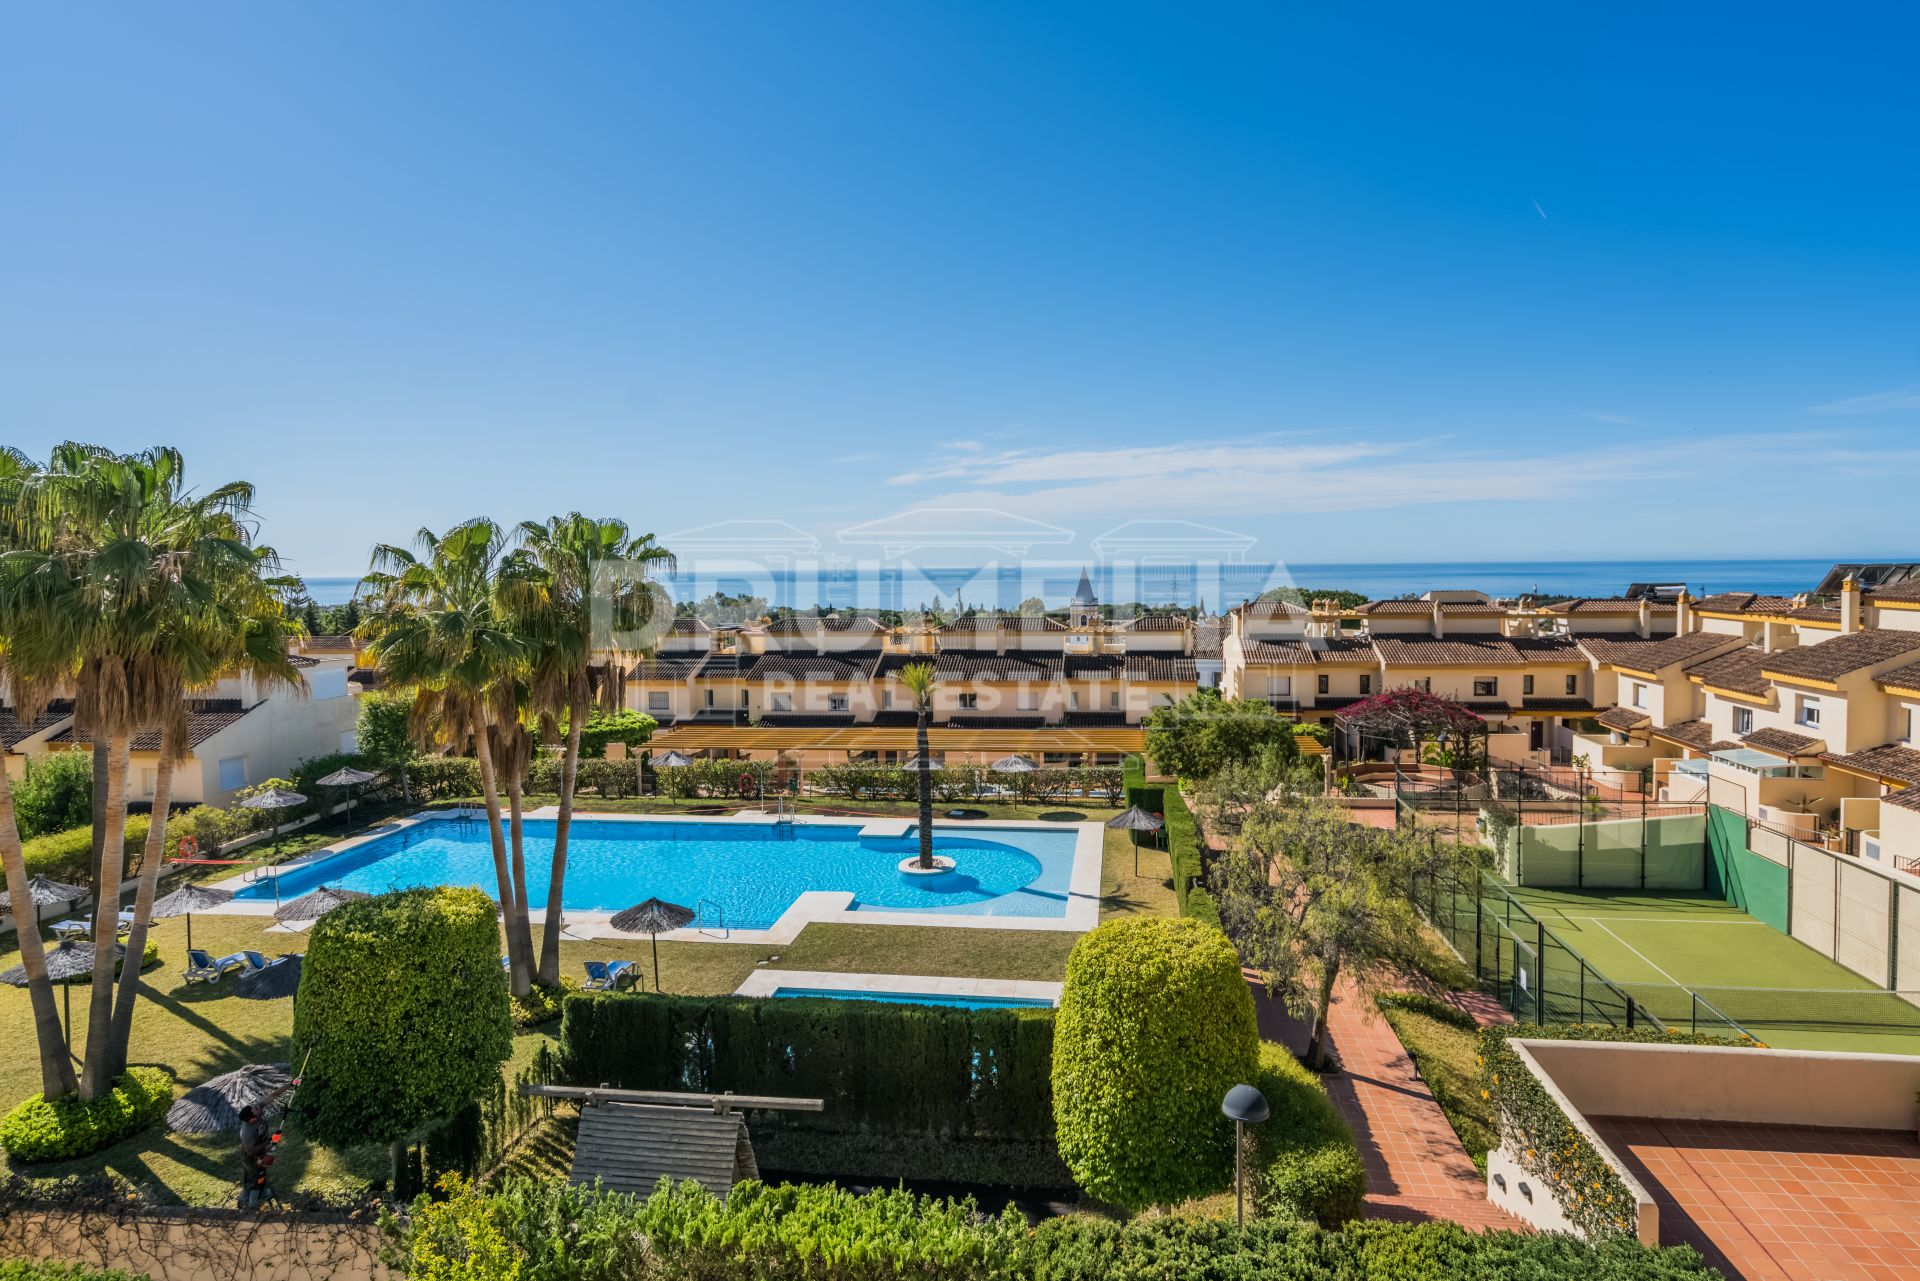 Marbella Golden Mile, Fabulous Townhouse with Sea Views, Corona de Nagüeles, Marbella Golden Mile, Marbella